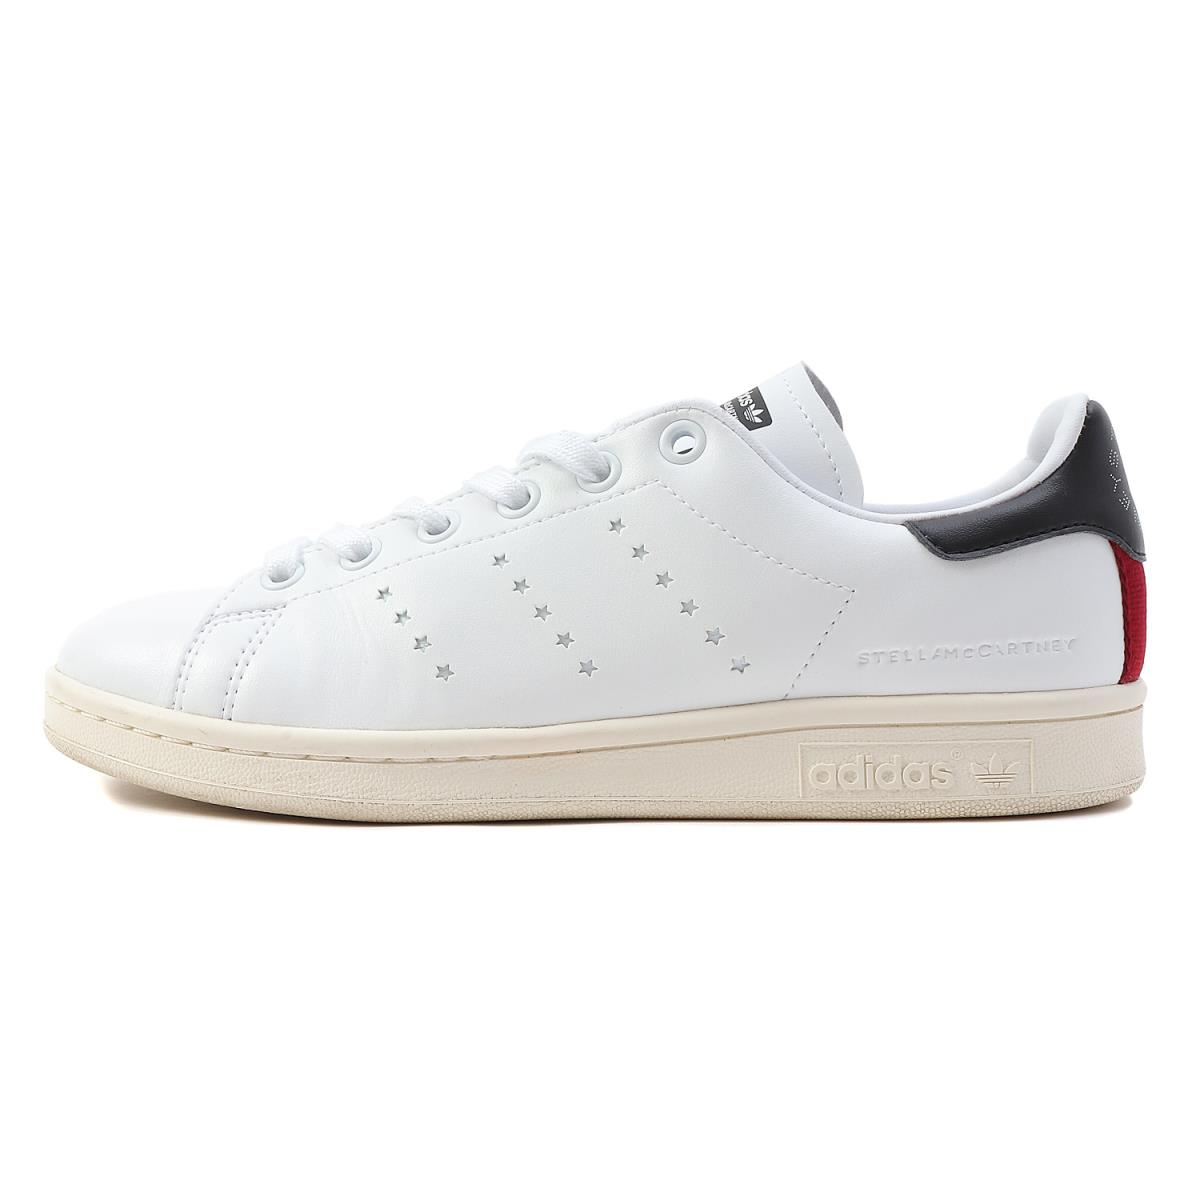 100% authentic b1590 9f744 STELLA McCARTNEY (Stella McCartney) 18A W X adidas Adidas Stan Smith star  star white ...